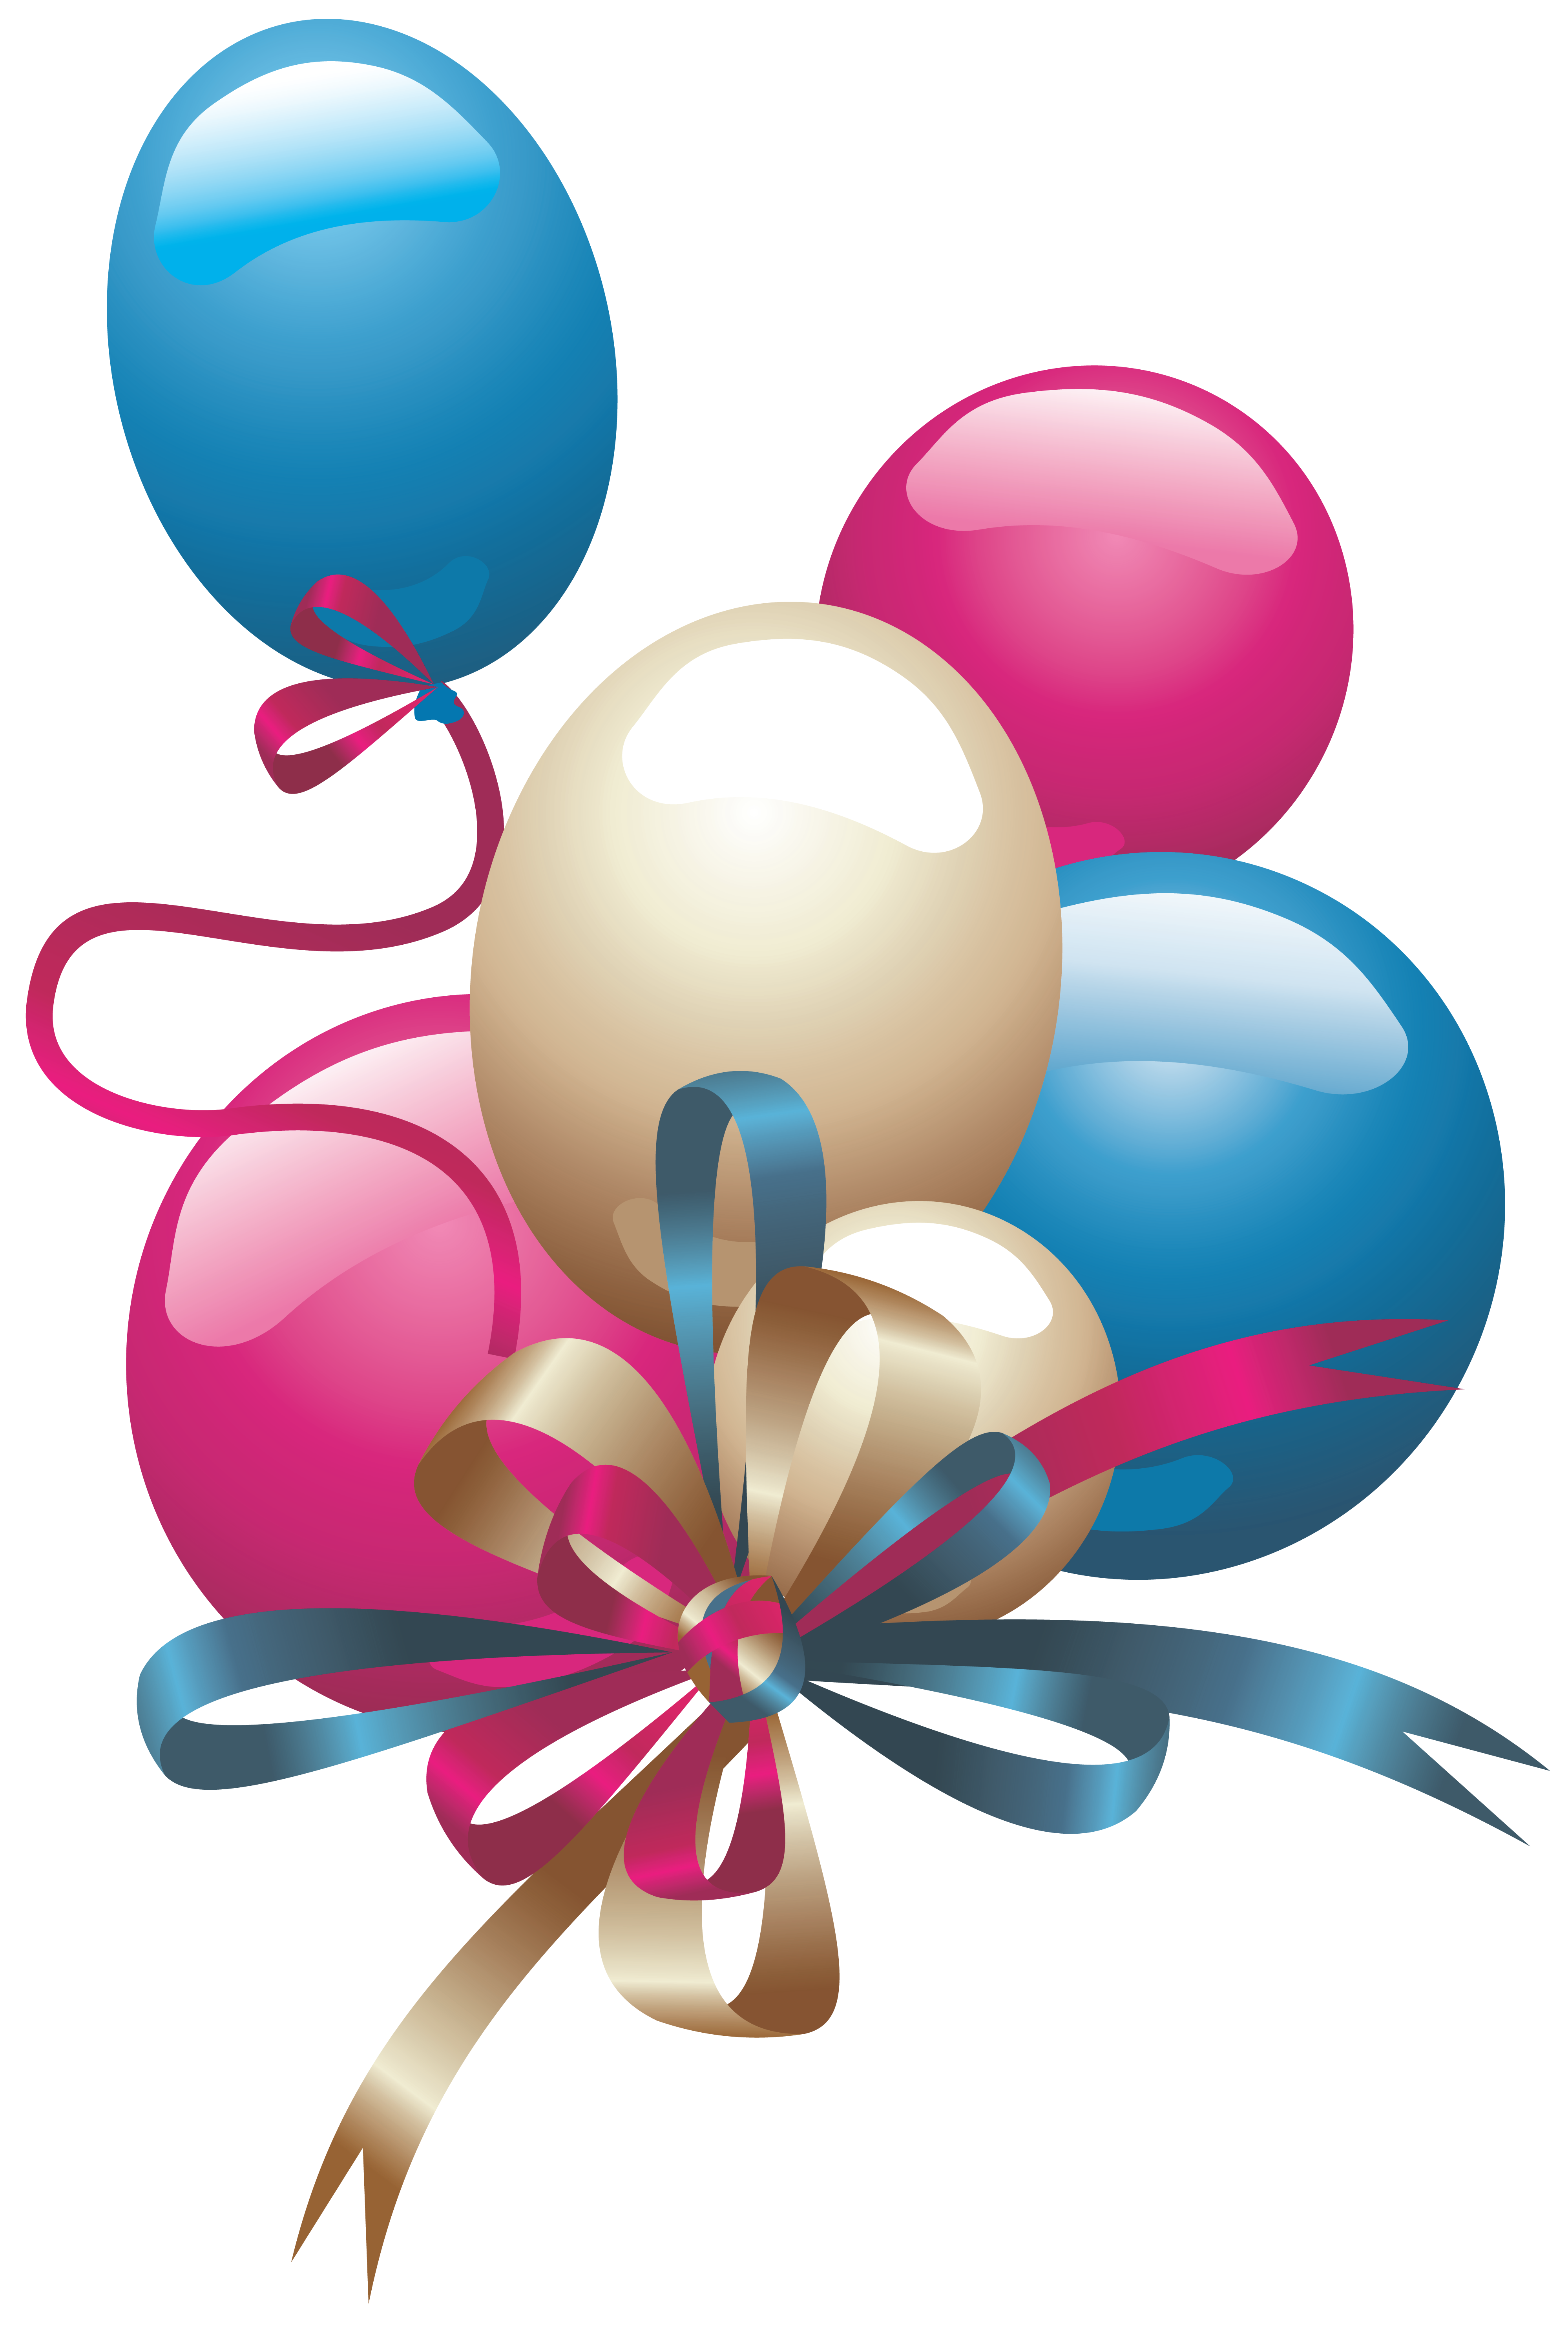 Happy Birthday Balloons Clip Art ~ Balloons png clipart best